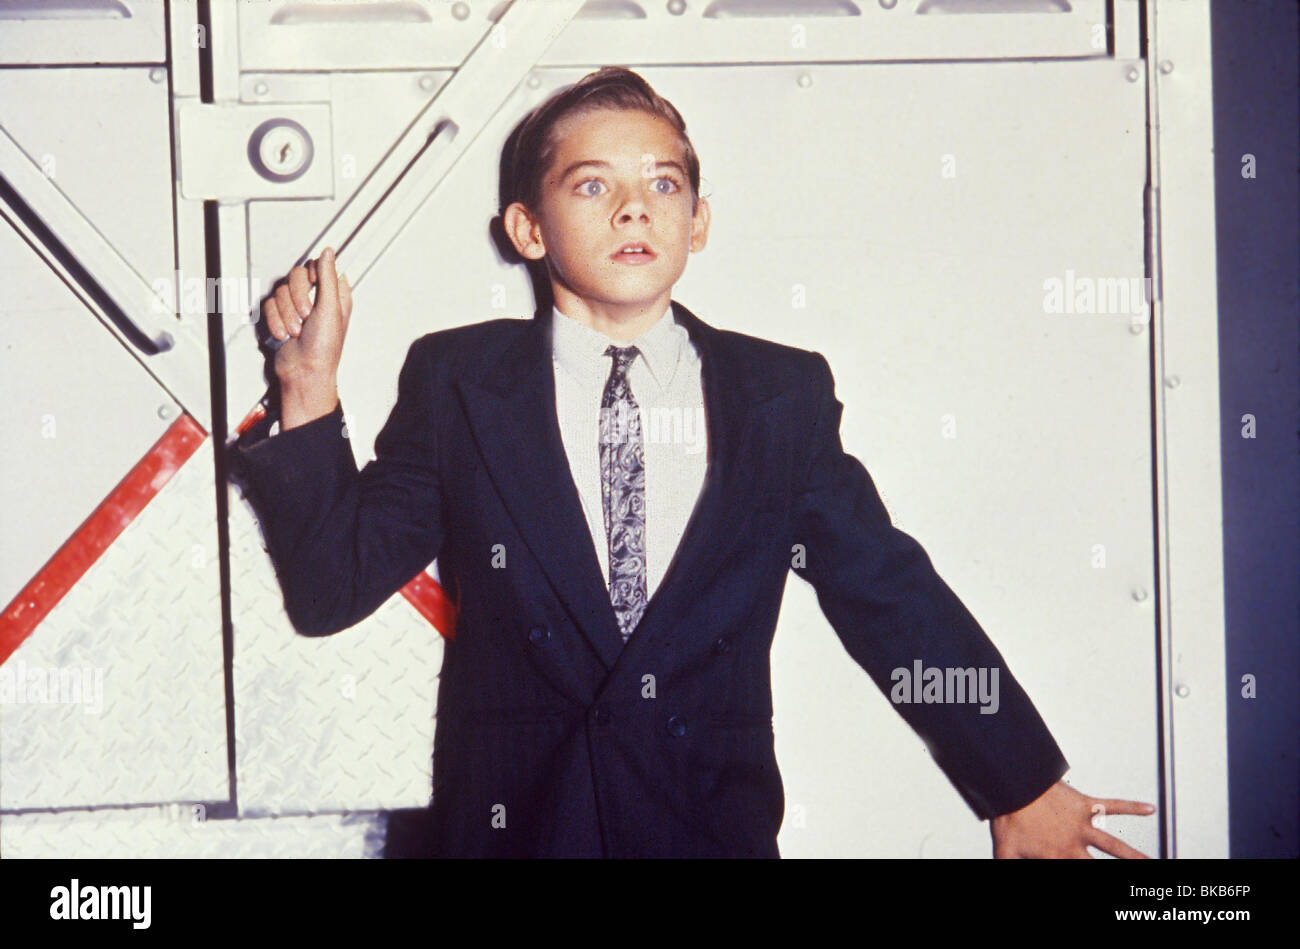 ROBOCOP 2 -1990 GABRIEL DAMON Stock Photo, Royalty Free ...